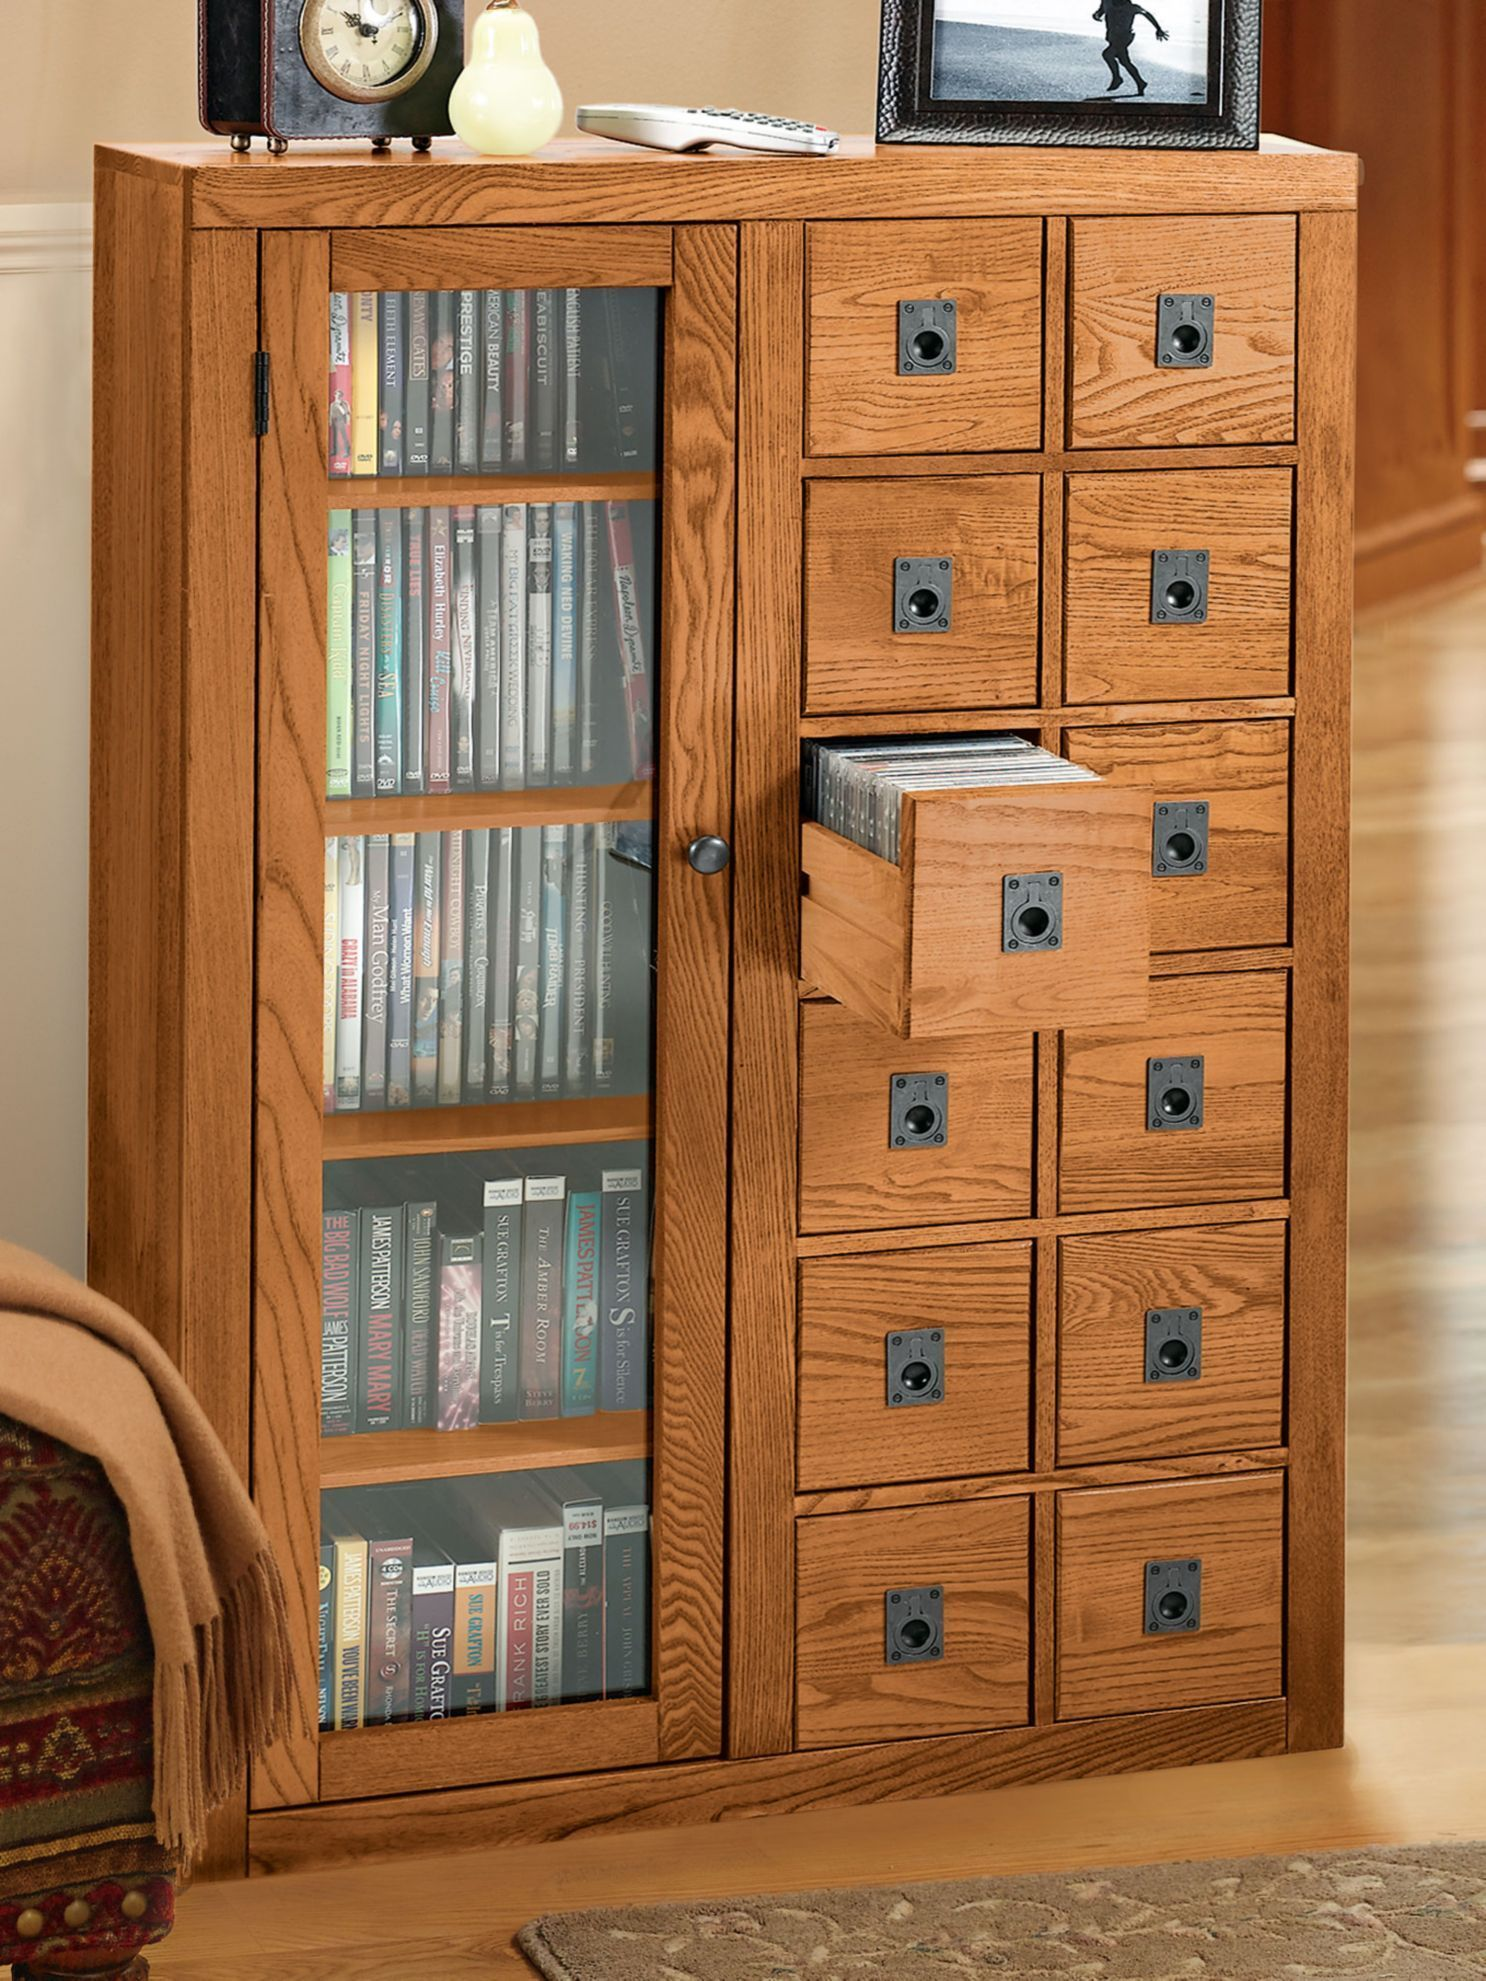 21 Cool Unique Diy Dvd Storage Ideas For Small Spaces